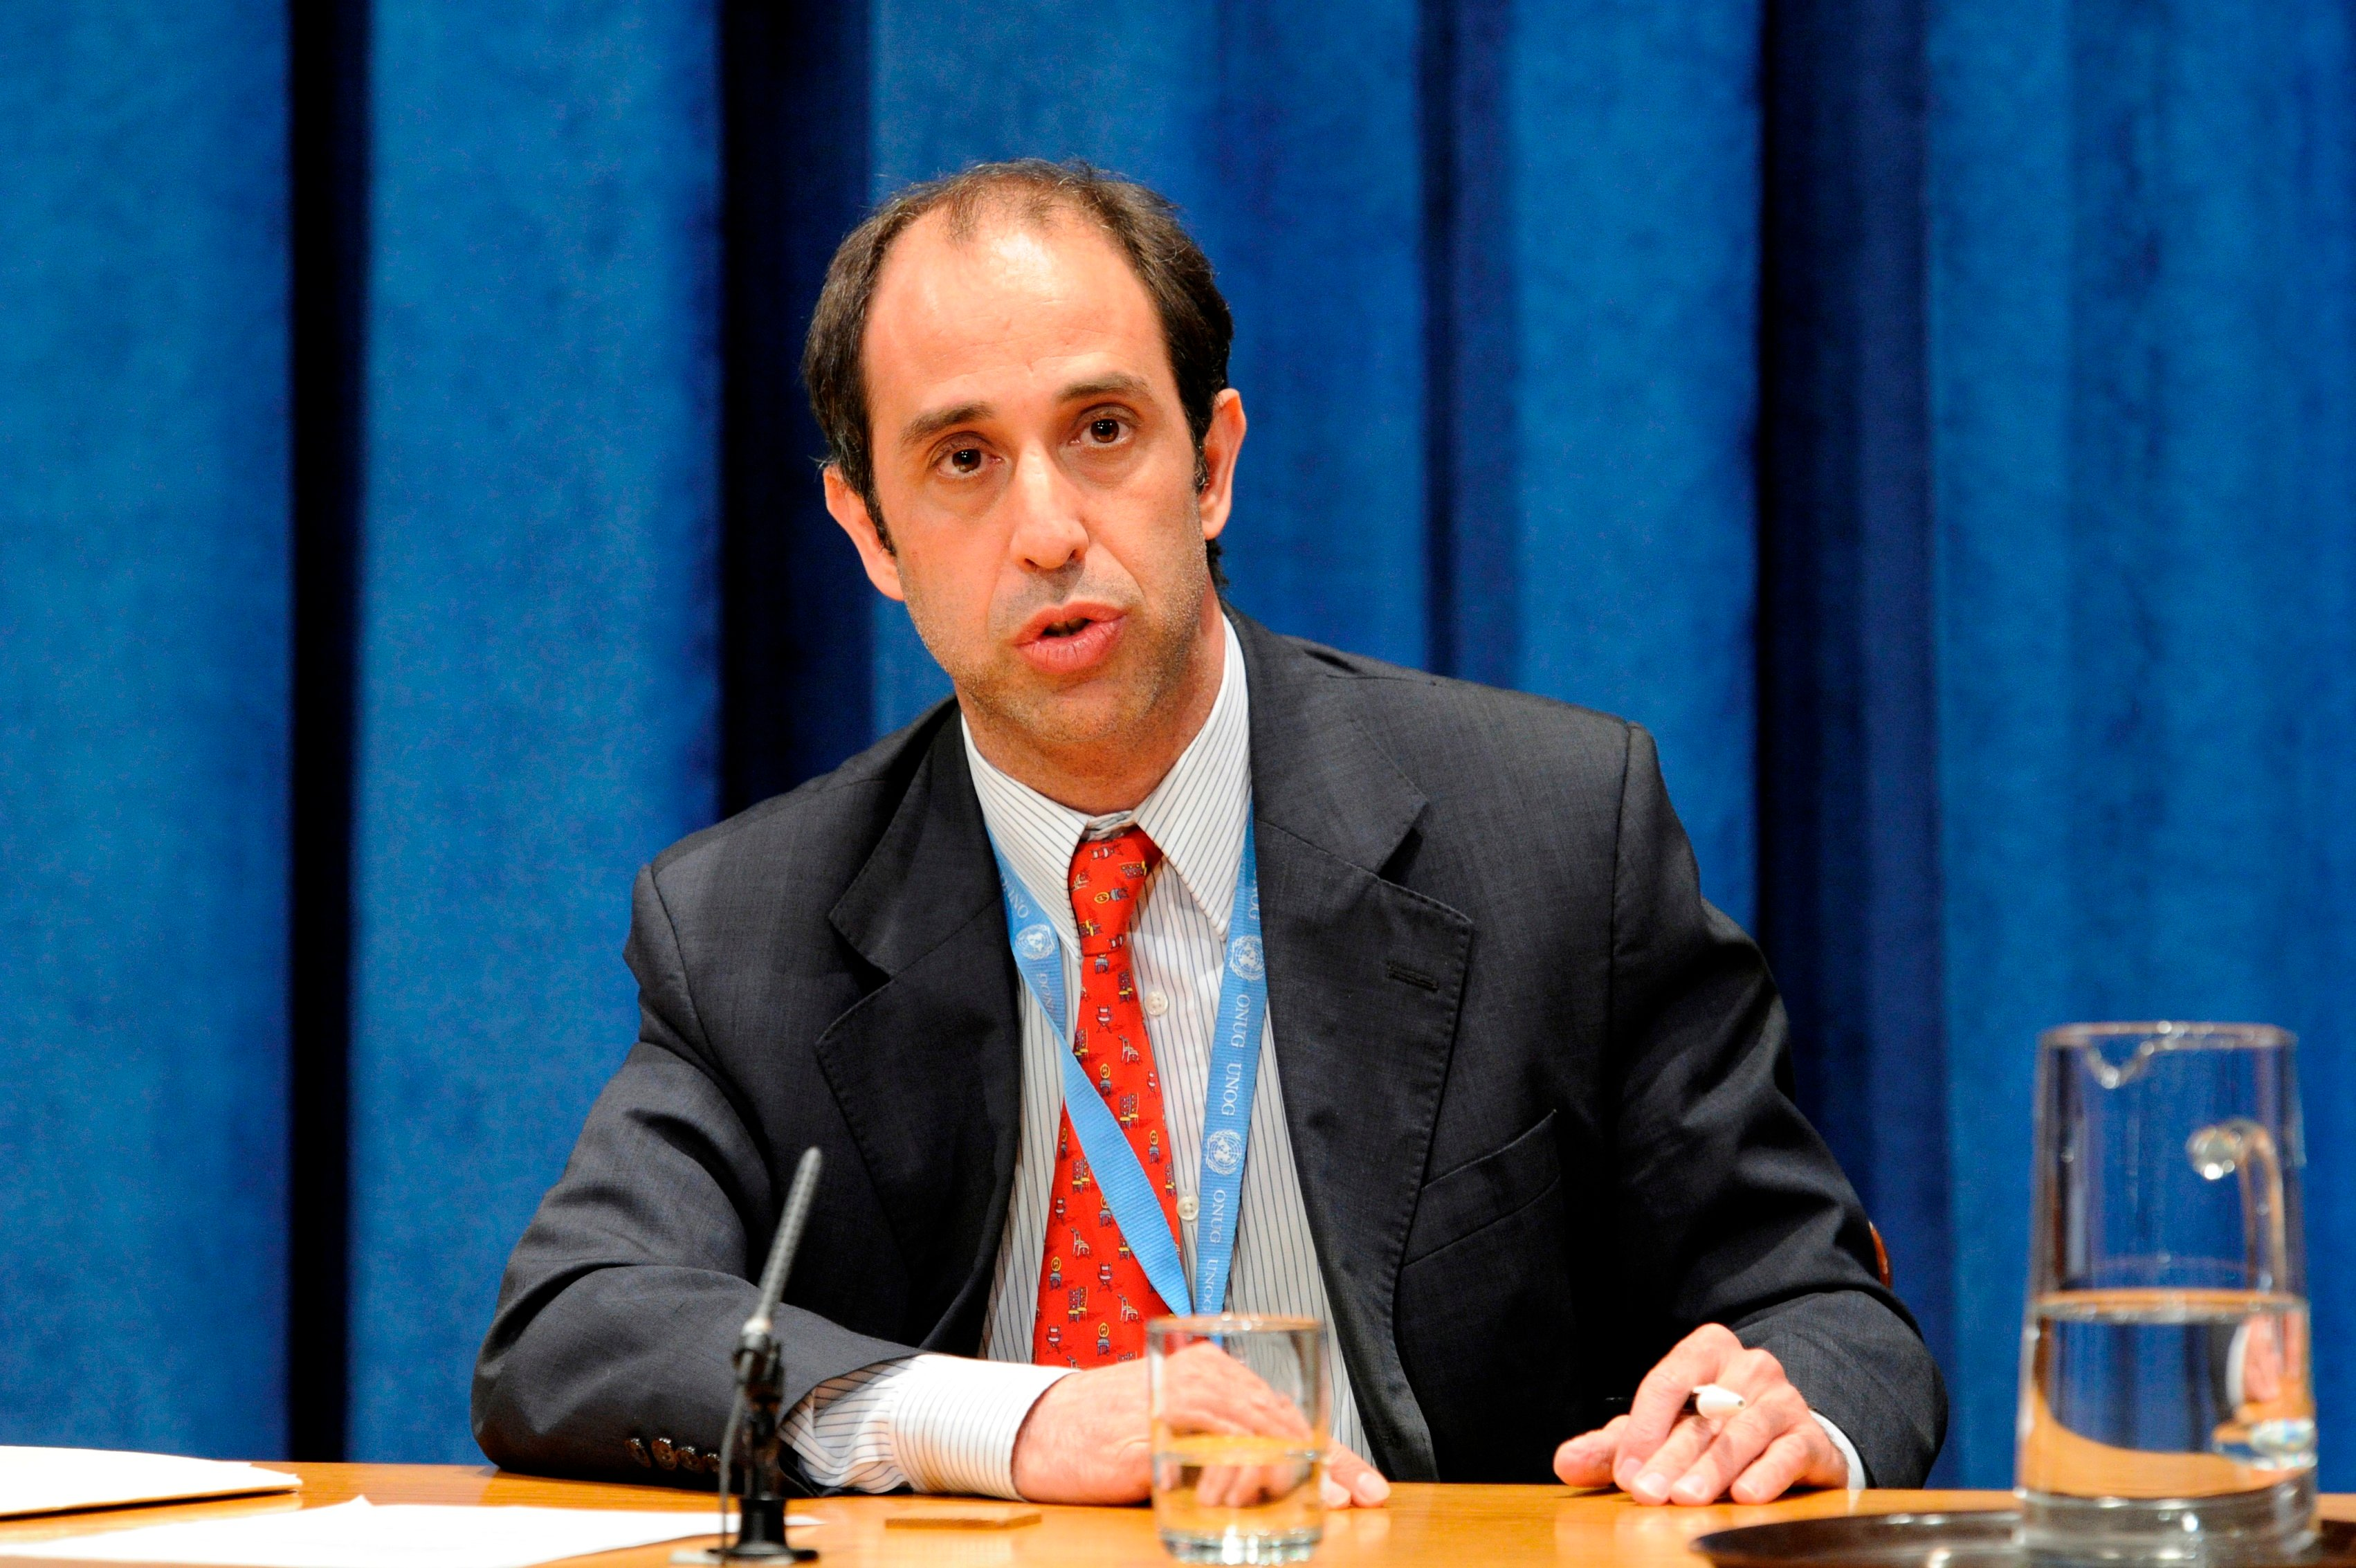 UN Special Rapporteur on the situation of human rights in Myanmar, Tomas Ojea Quintana